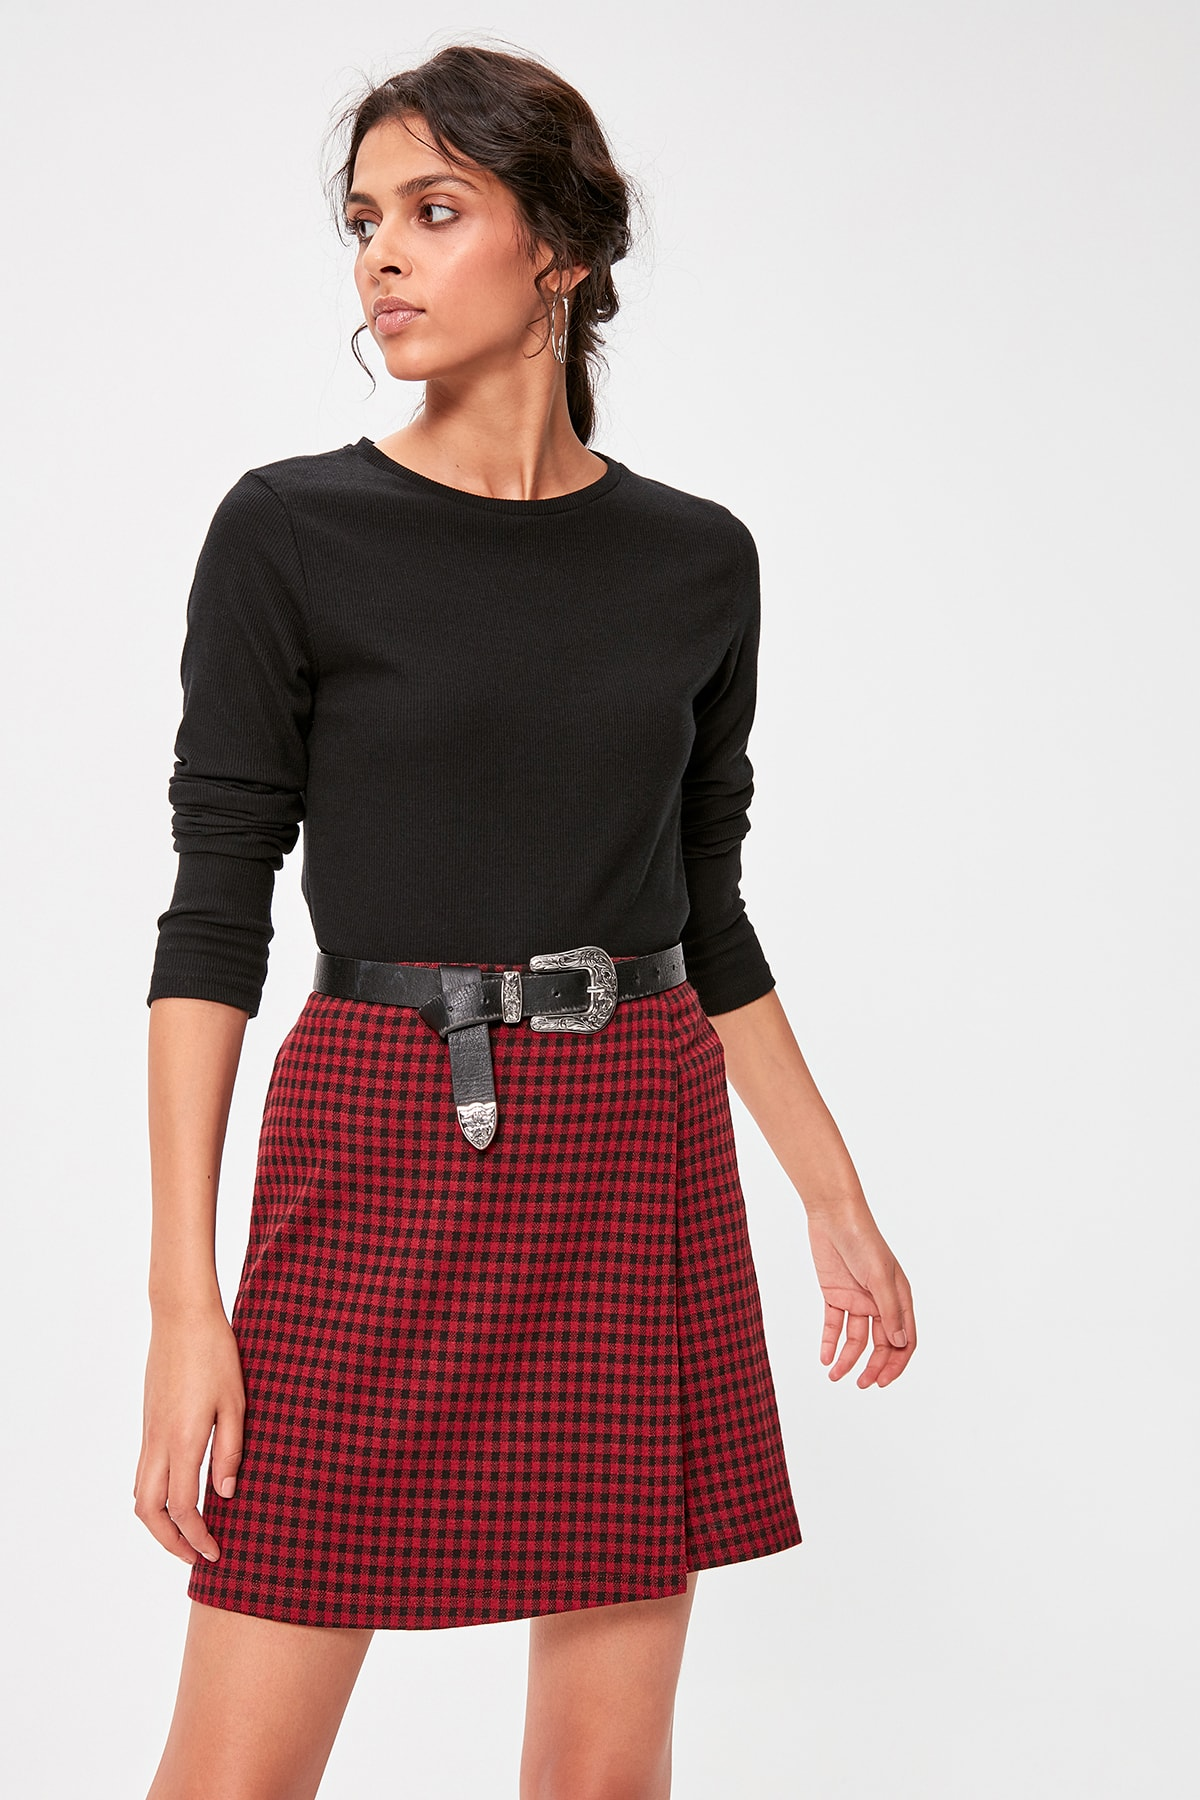 Trendyol Burgundy Gingham Knitted Skirt TWOAW20ET0278